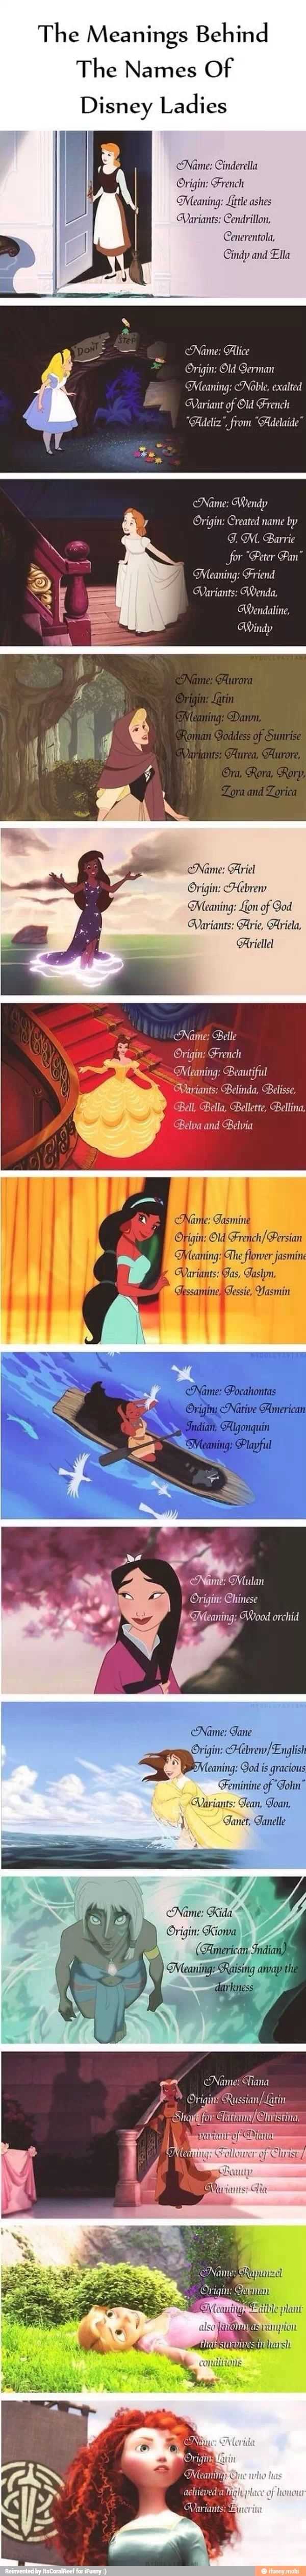 The origin and meaning of the Disney princess names